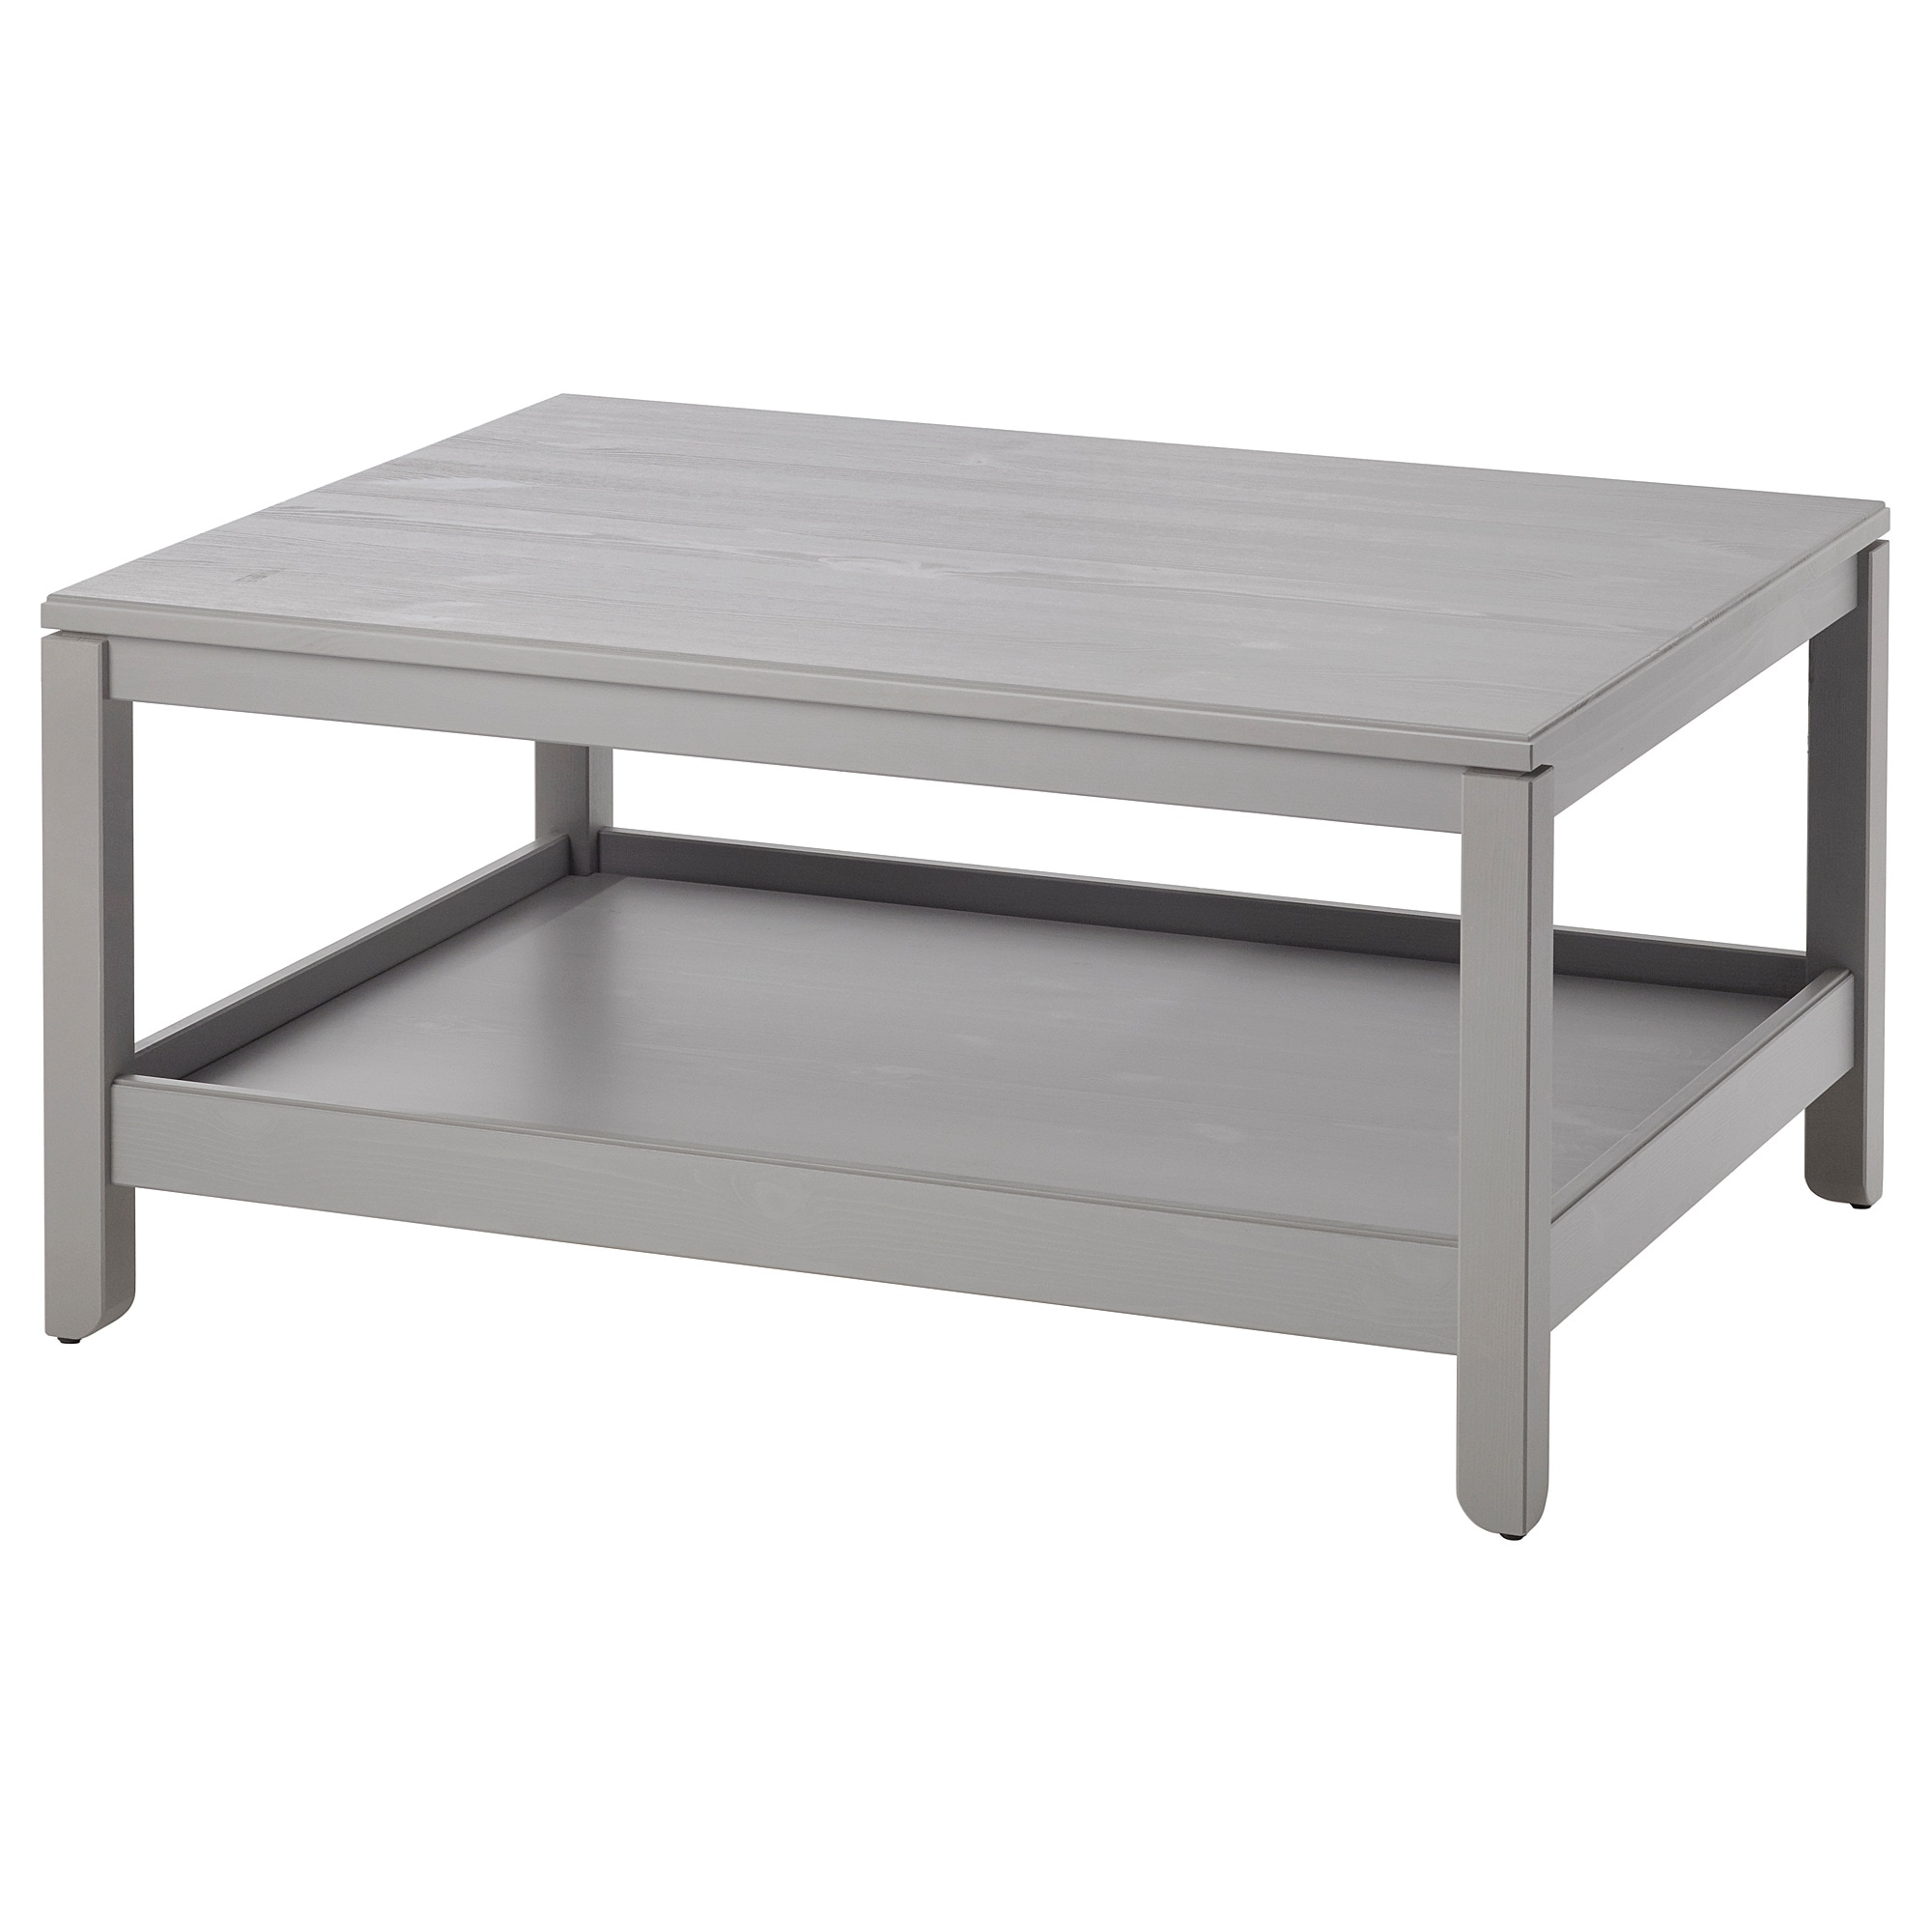 Havsta coffee table grey 100x75 cm